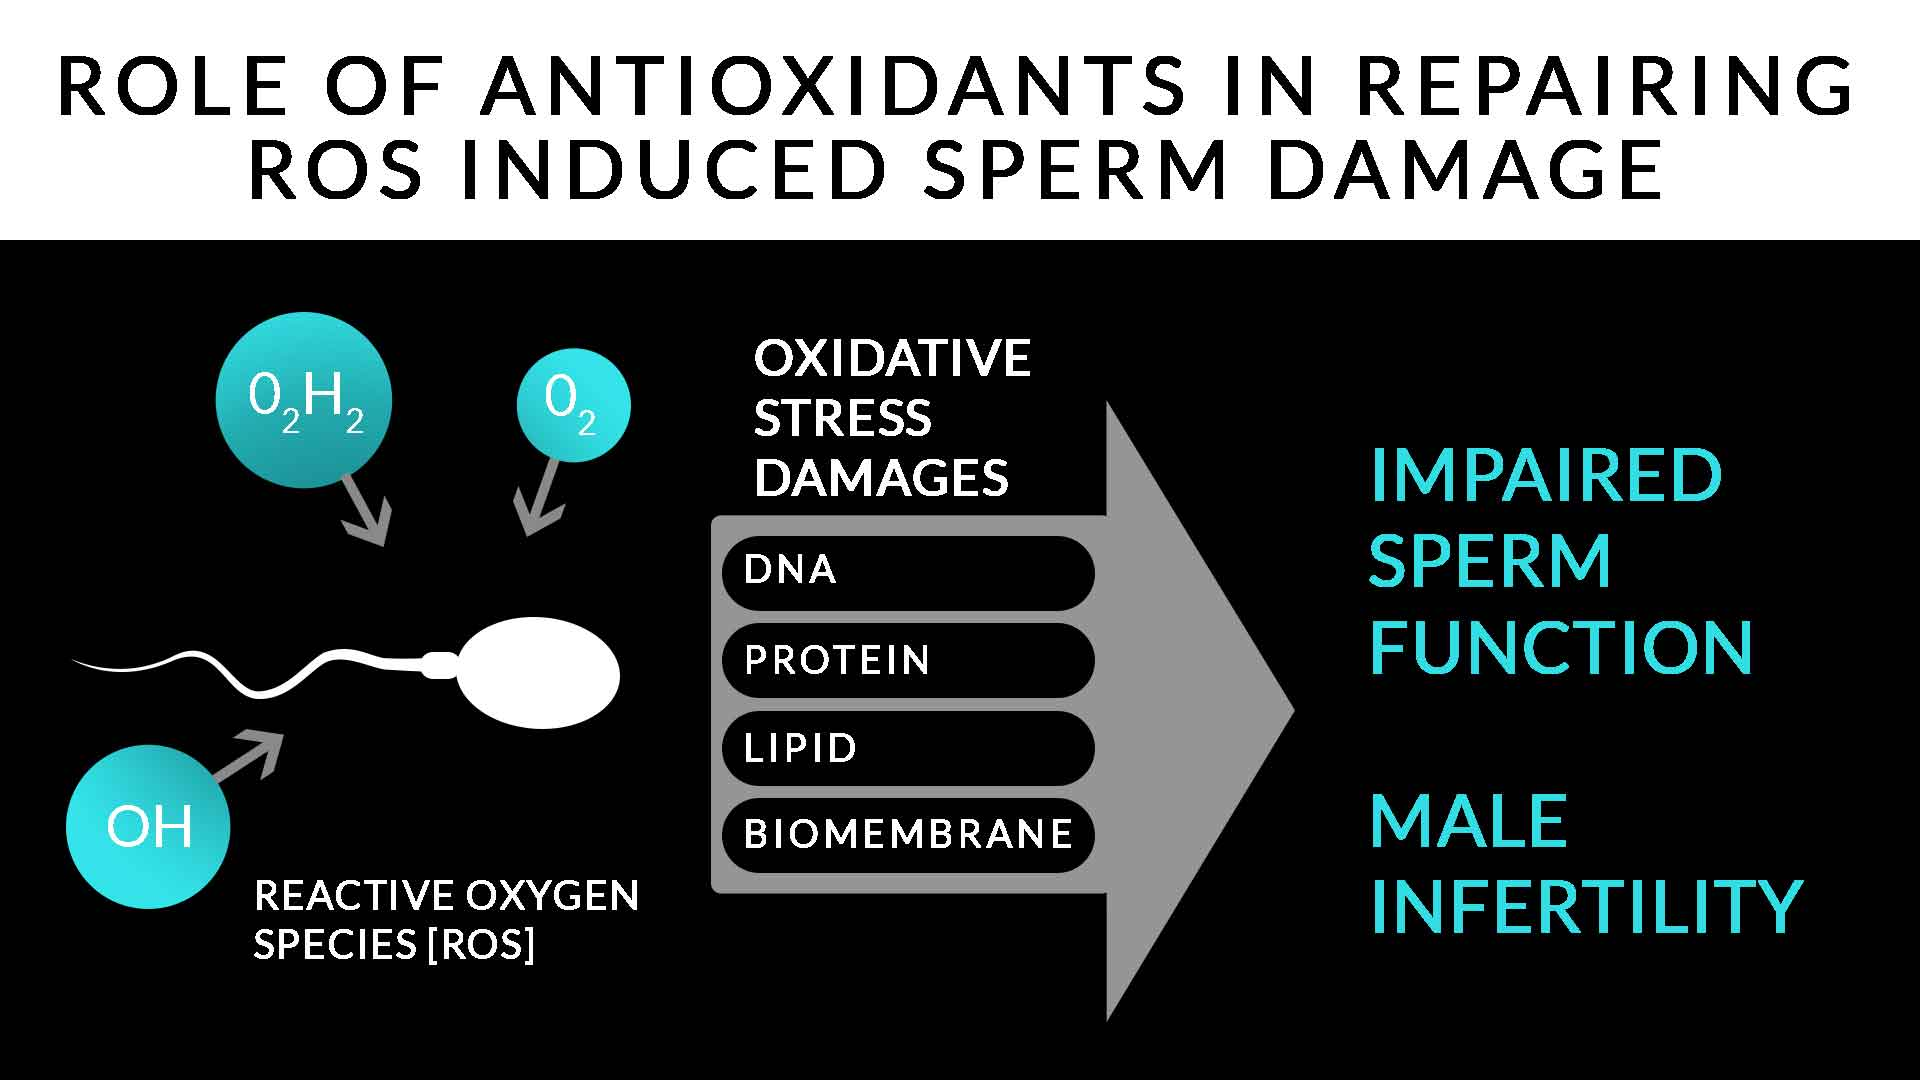 Male Infertility Causes and Treatment | Antioxidant therapy to combat sperm damage